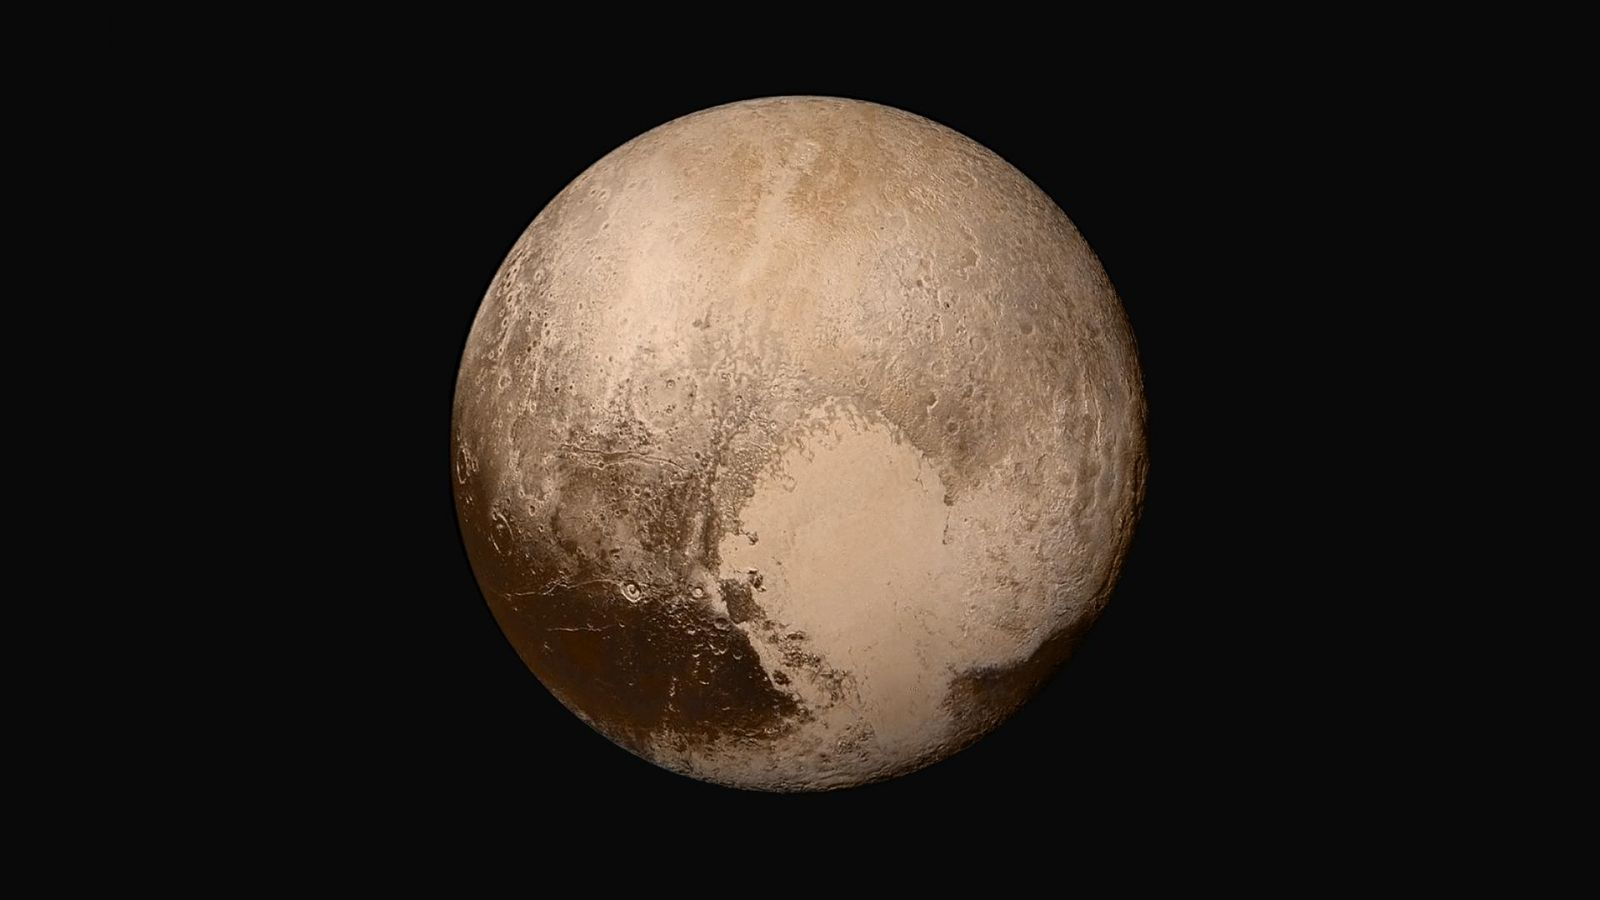 This composite image showing Pluto's heart was created using both black-and-white and color photos captured by New Horizons. Image Credit: NASA/Johns Hopkins University Applied Physics Laboratory/Southwest Research Institute.